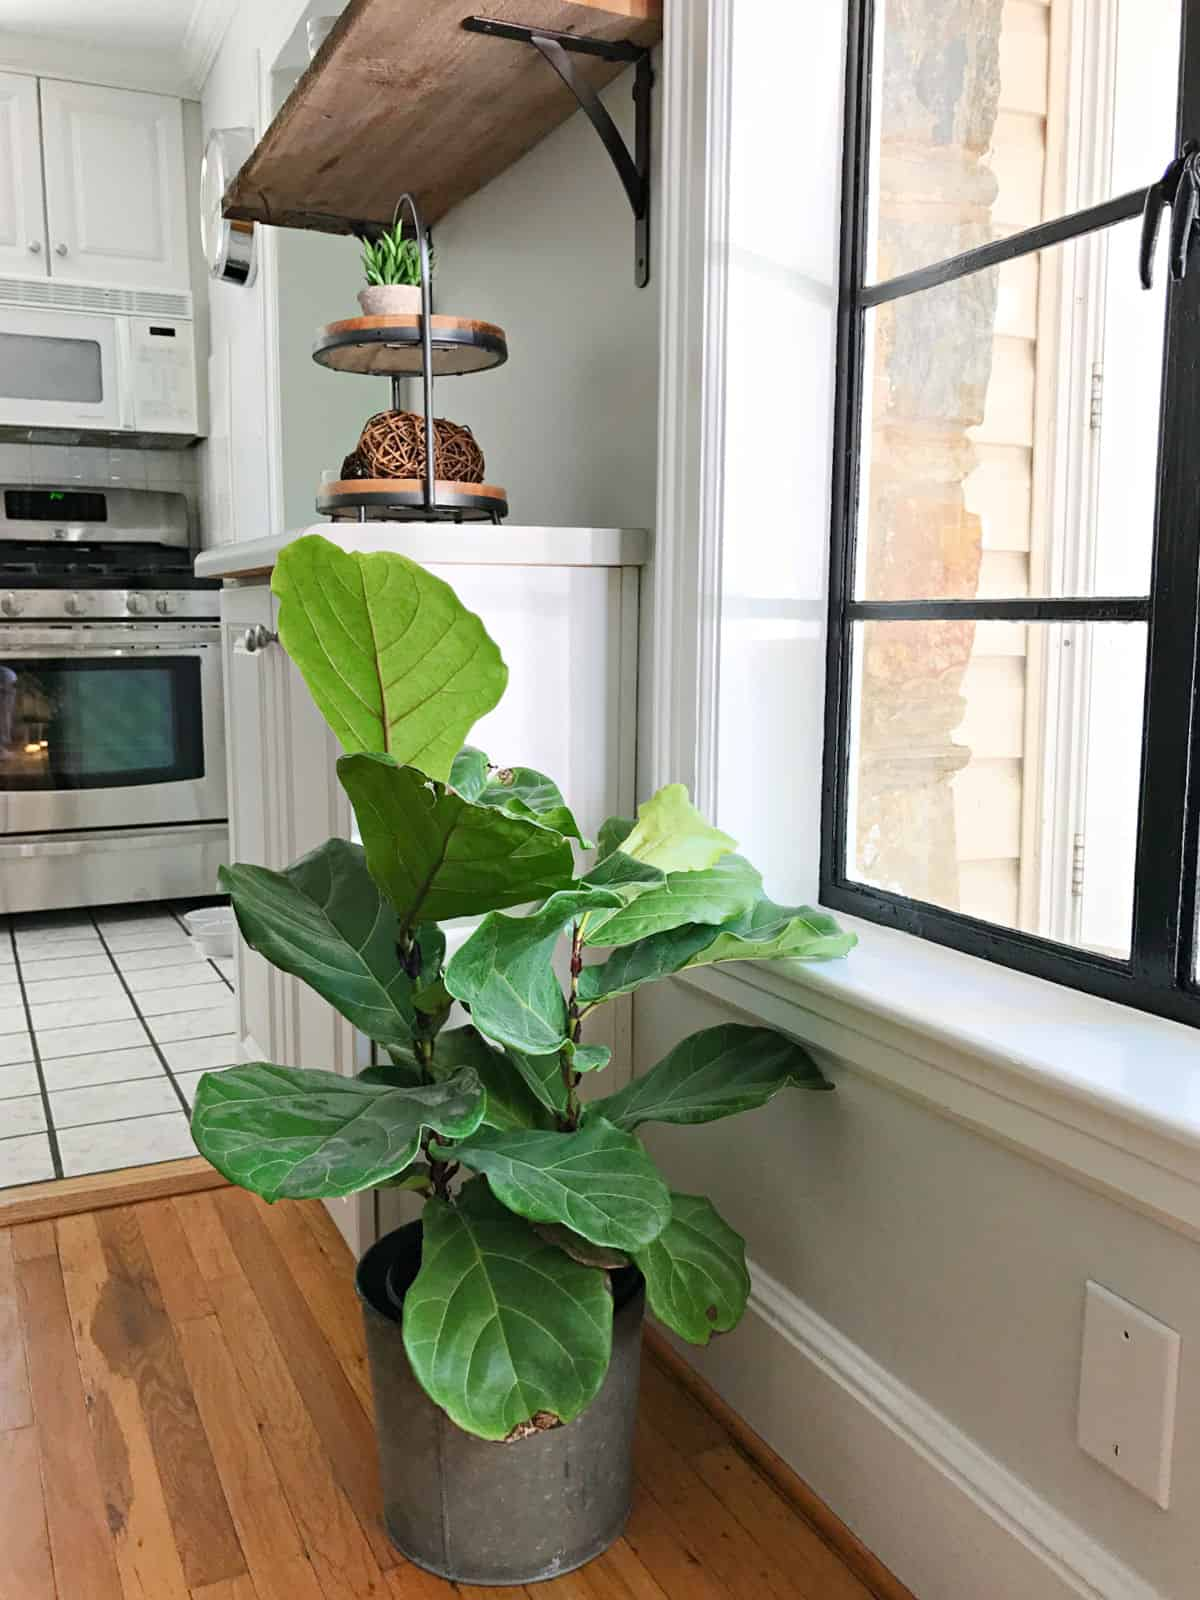 small fiddle leaf fig plant in kitchen